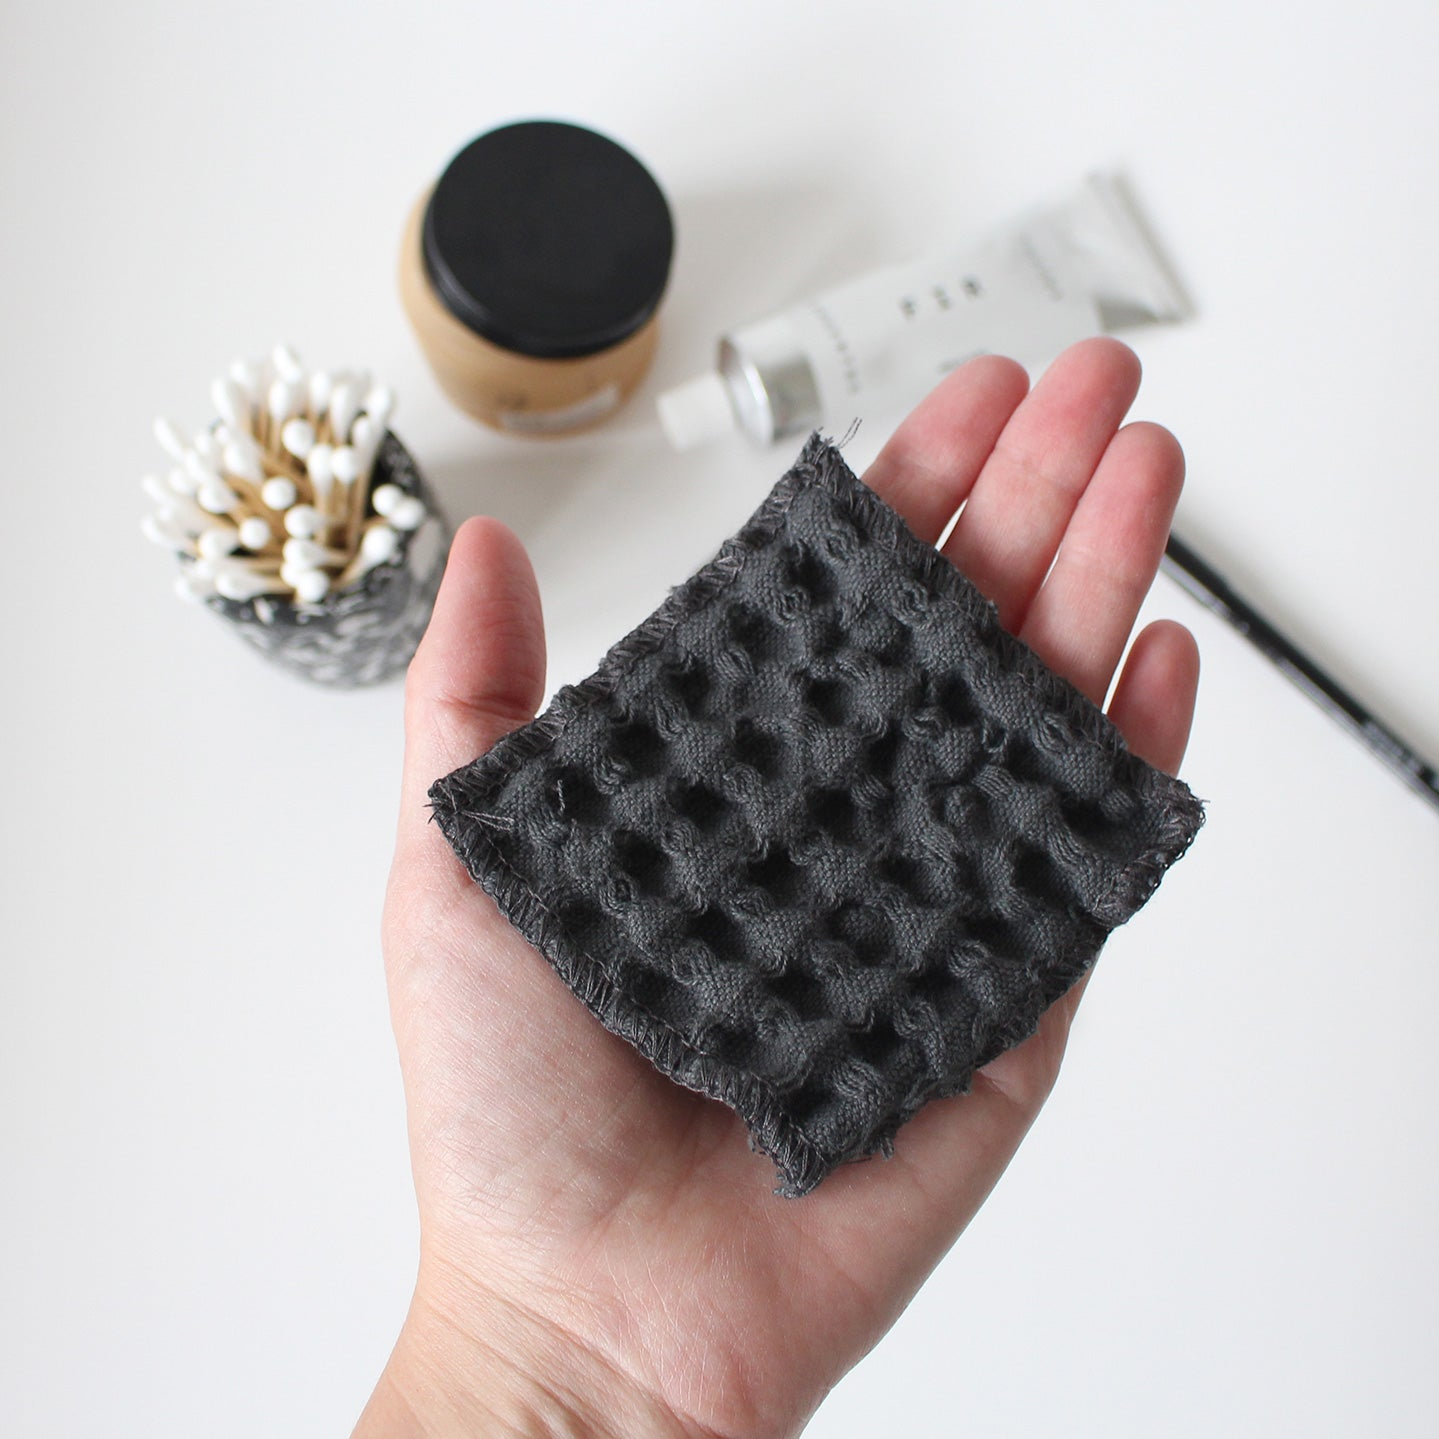 Grey waffle make-up pad held in a hand. In background - q-tips, moisturiser, hand cream